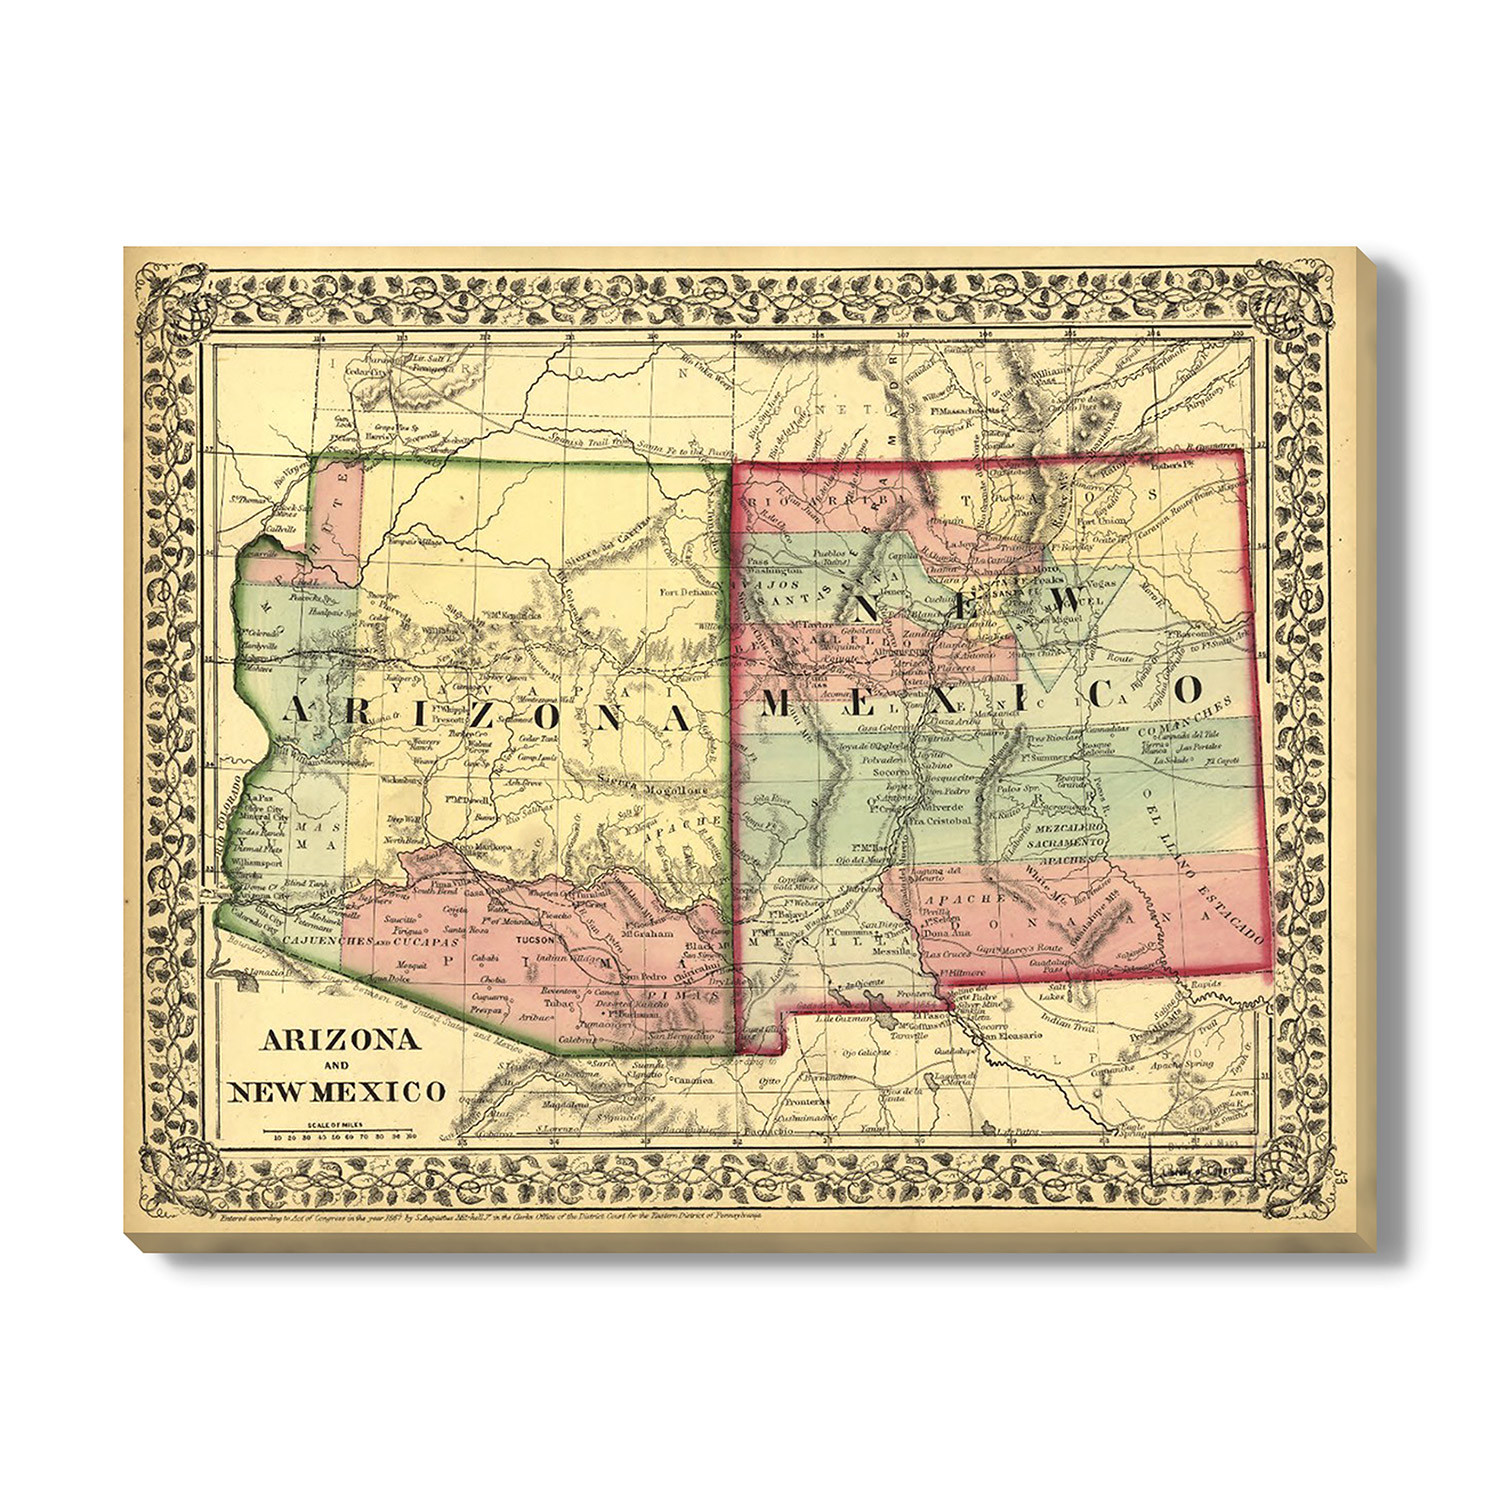 Map Of Arizona And New Mexico.Map Of Arizona New Mexico 1867 16 W X 13 H Vintage Maps